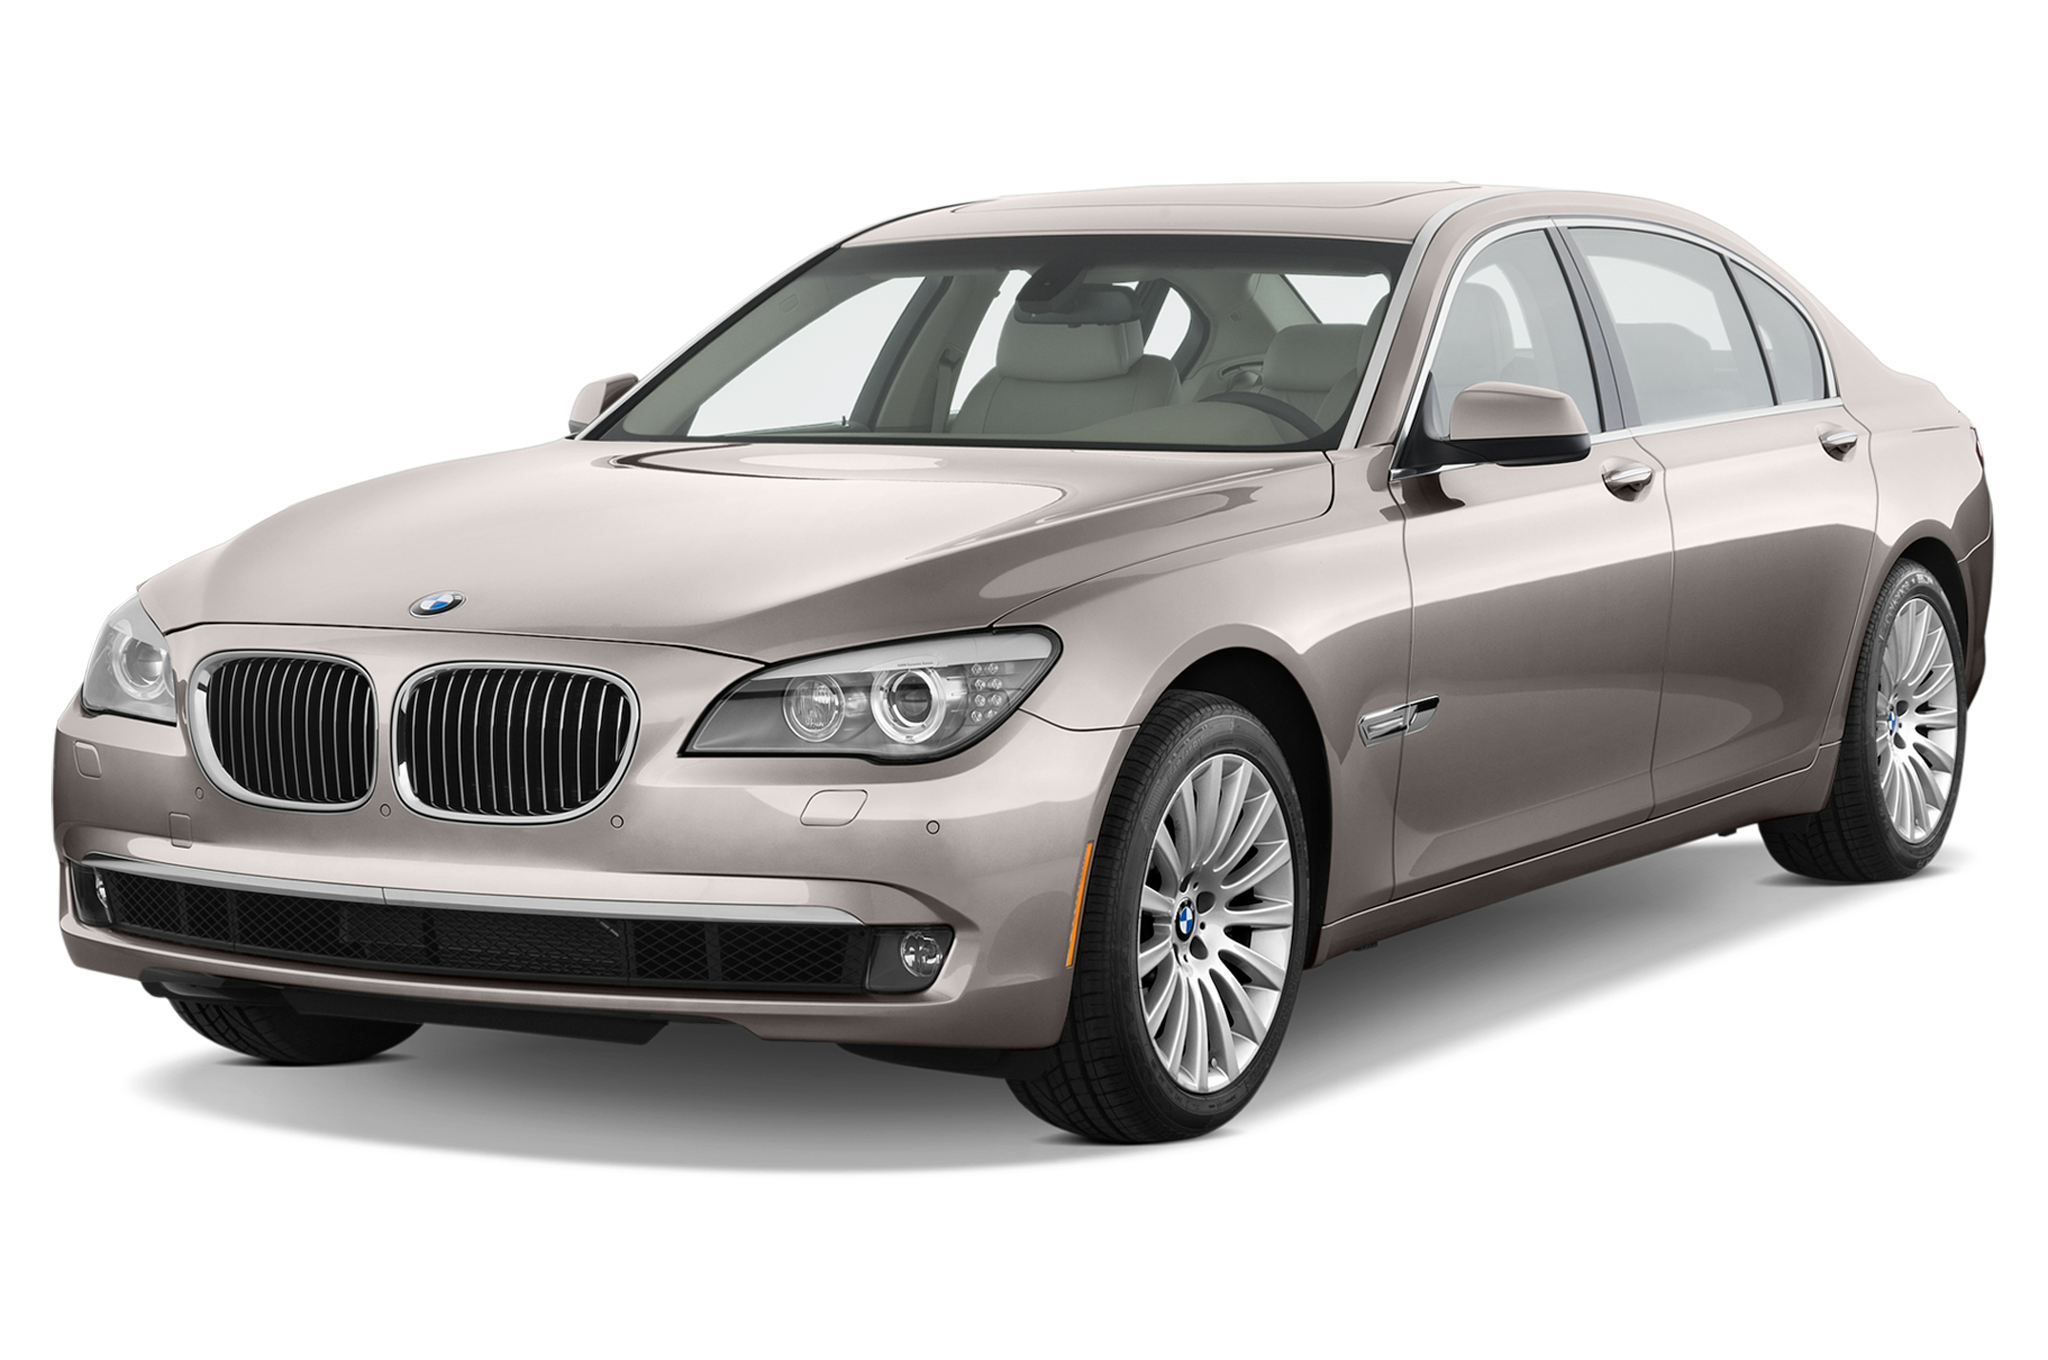 2012 bmw 750 li xdrive sedan editors 39 notebook. Black Bedroom Furniture Sets. Home Design Ideas